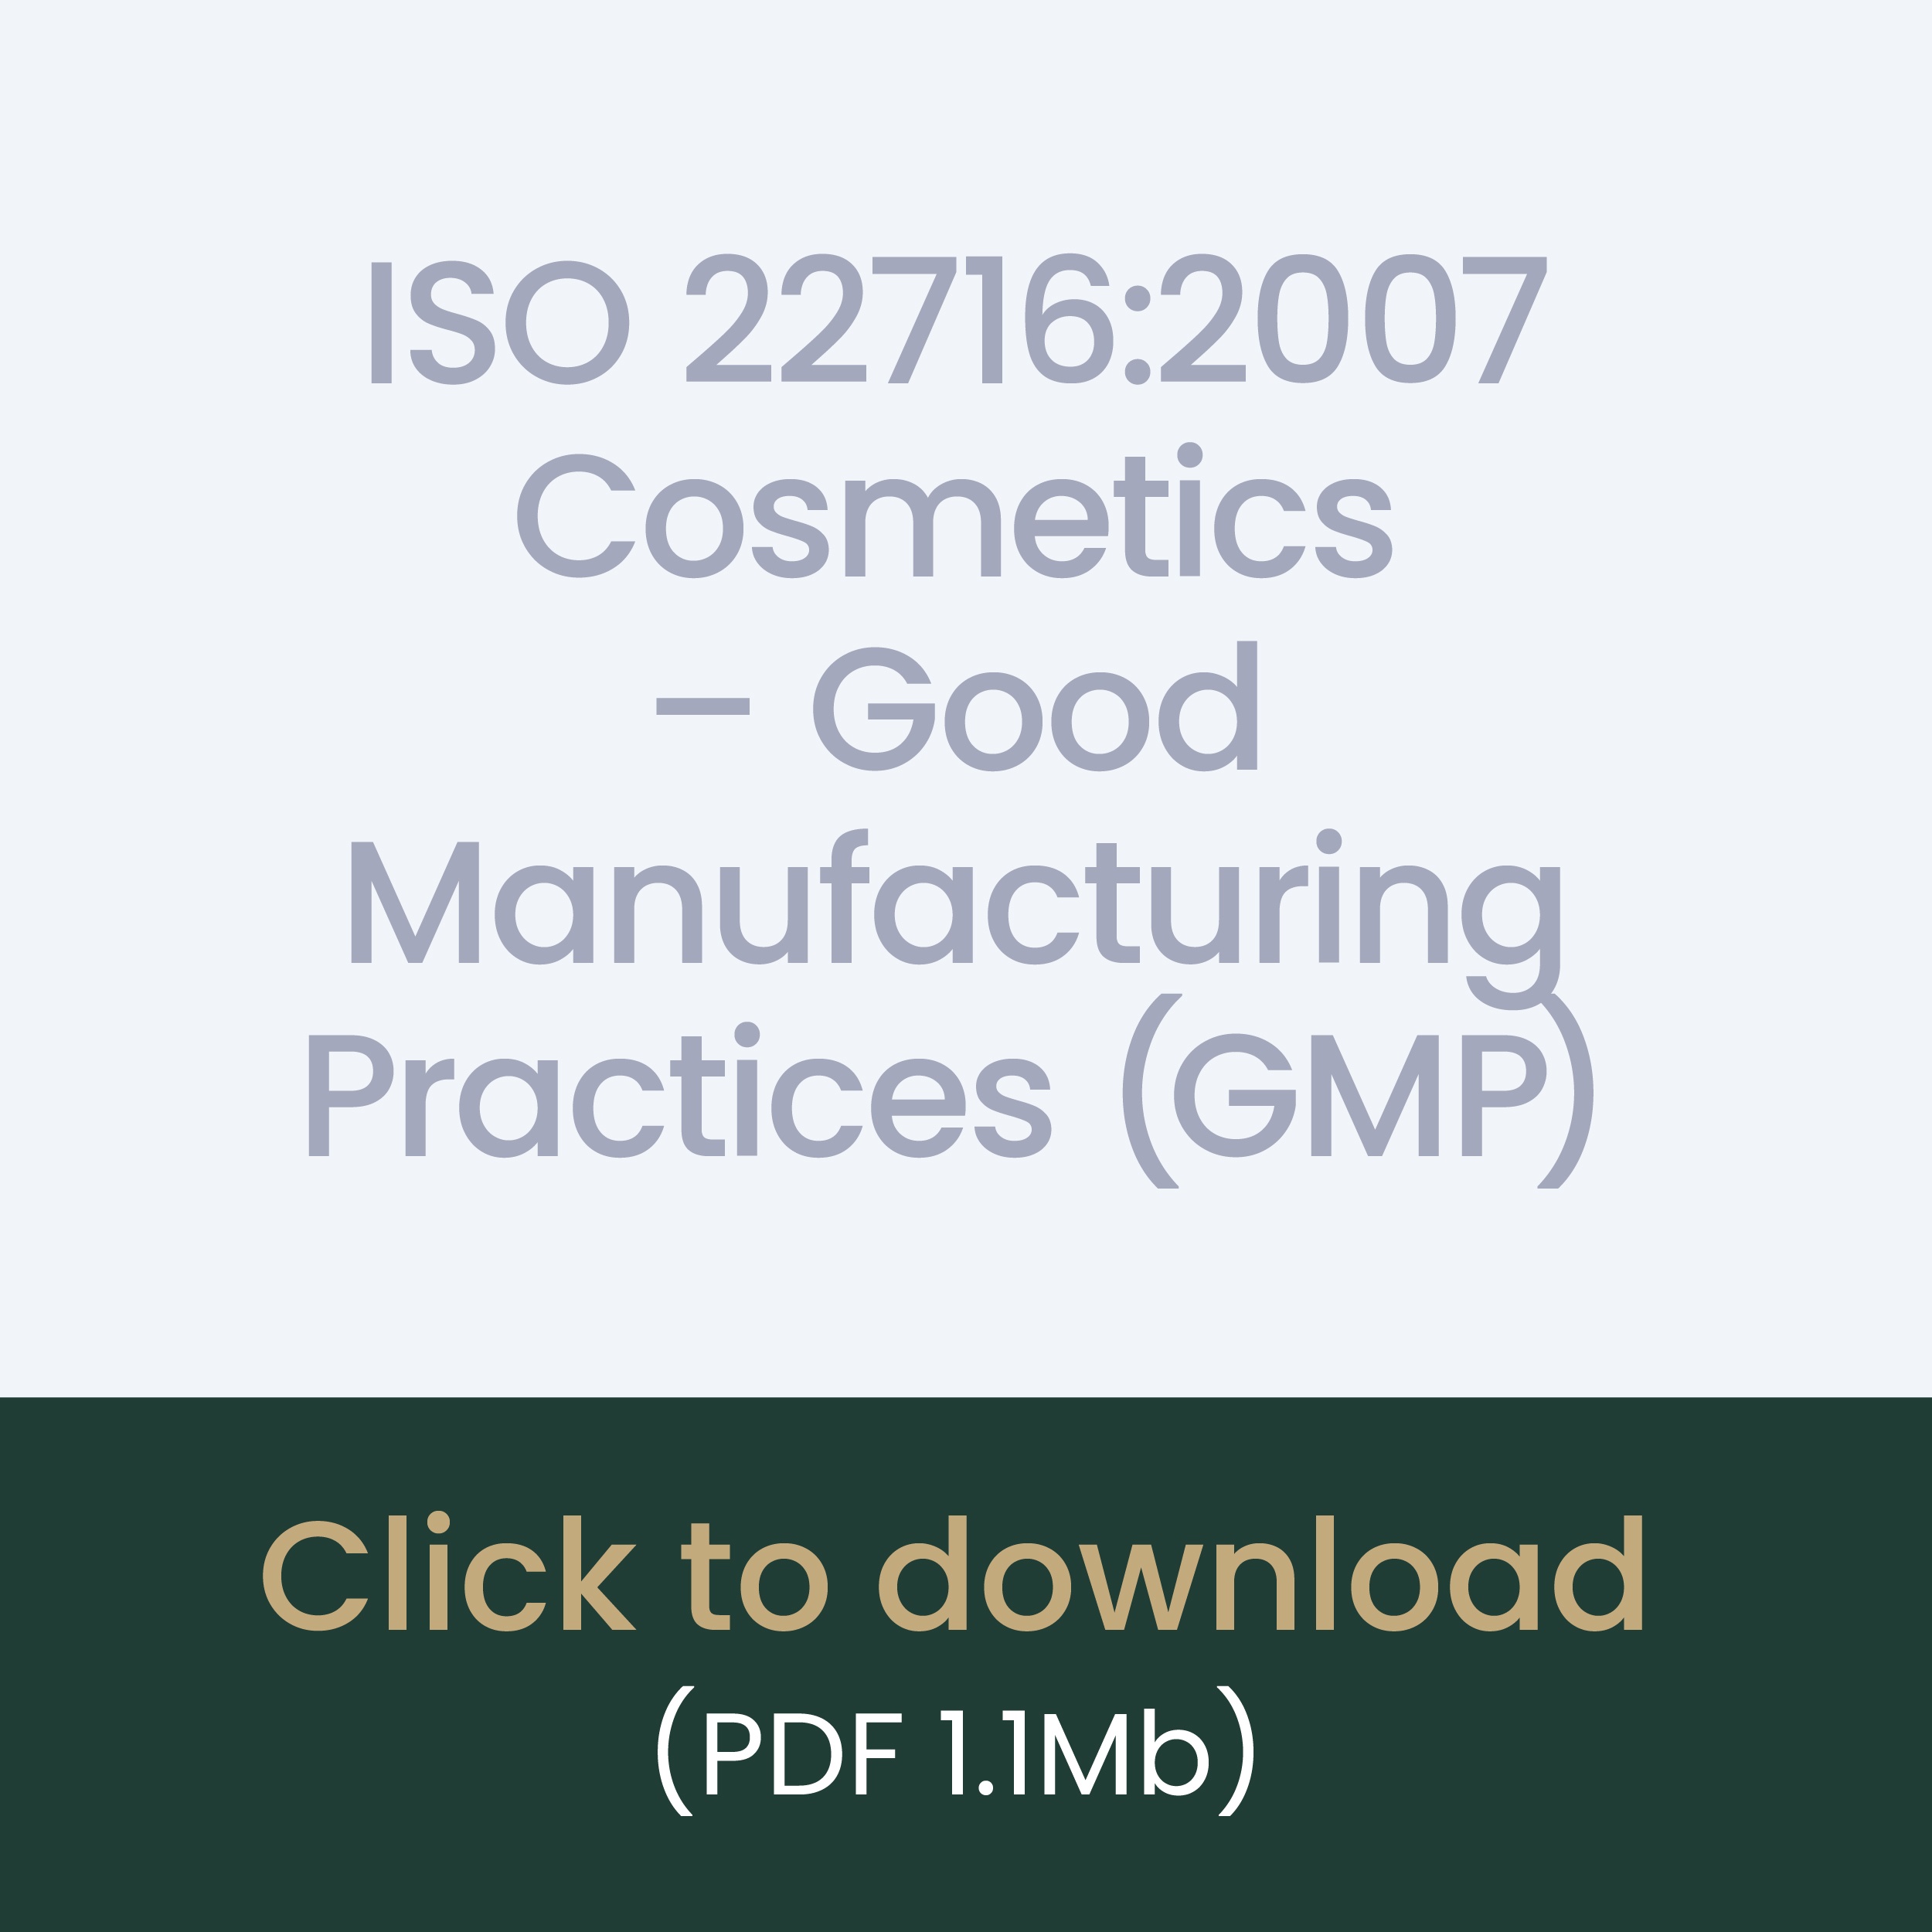 ISO 22716:2007 Cosmetics – Good Manufacturing Practices (GMP) download link